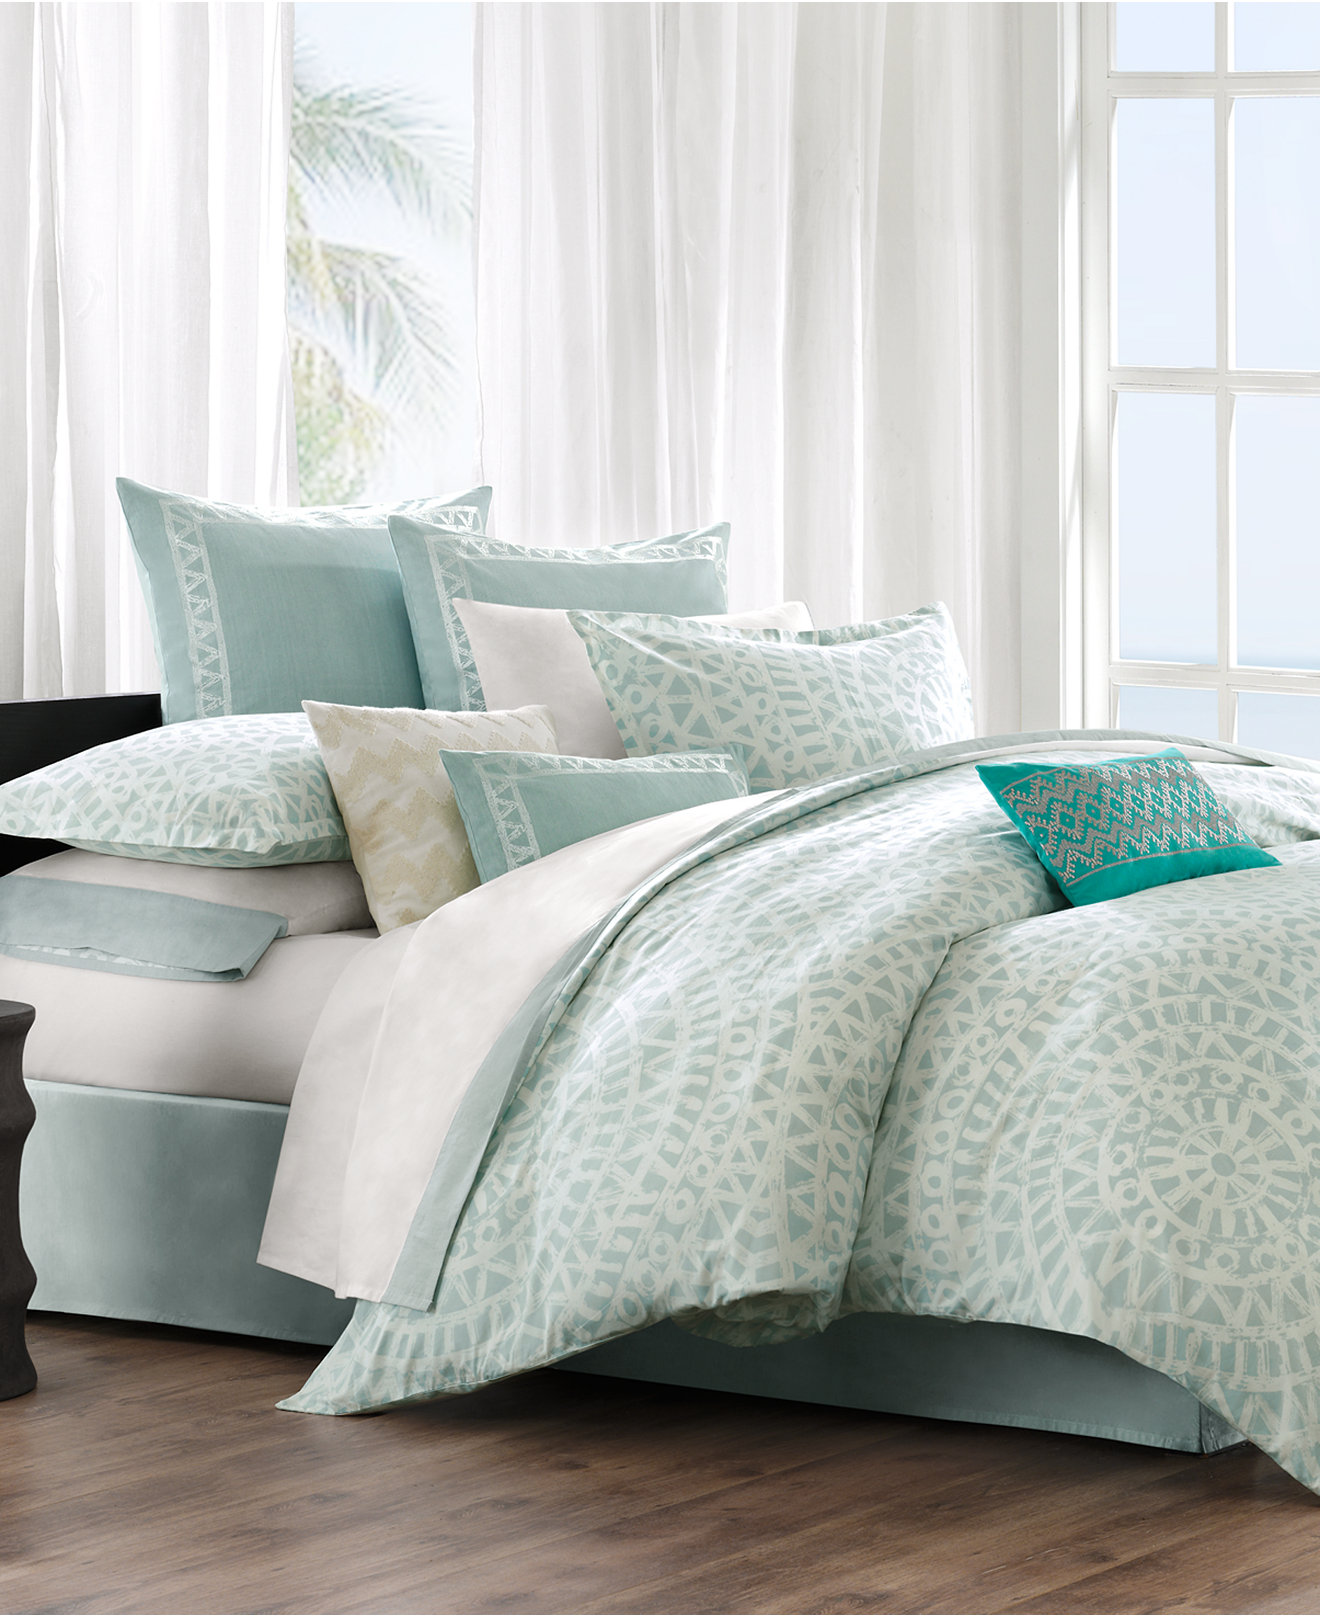 bedding collections  macy's - echo mykonos bedding collection  cotton